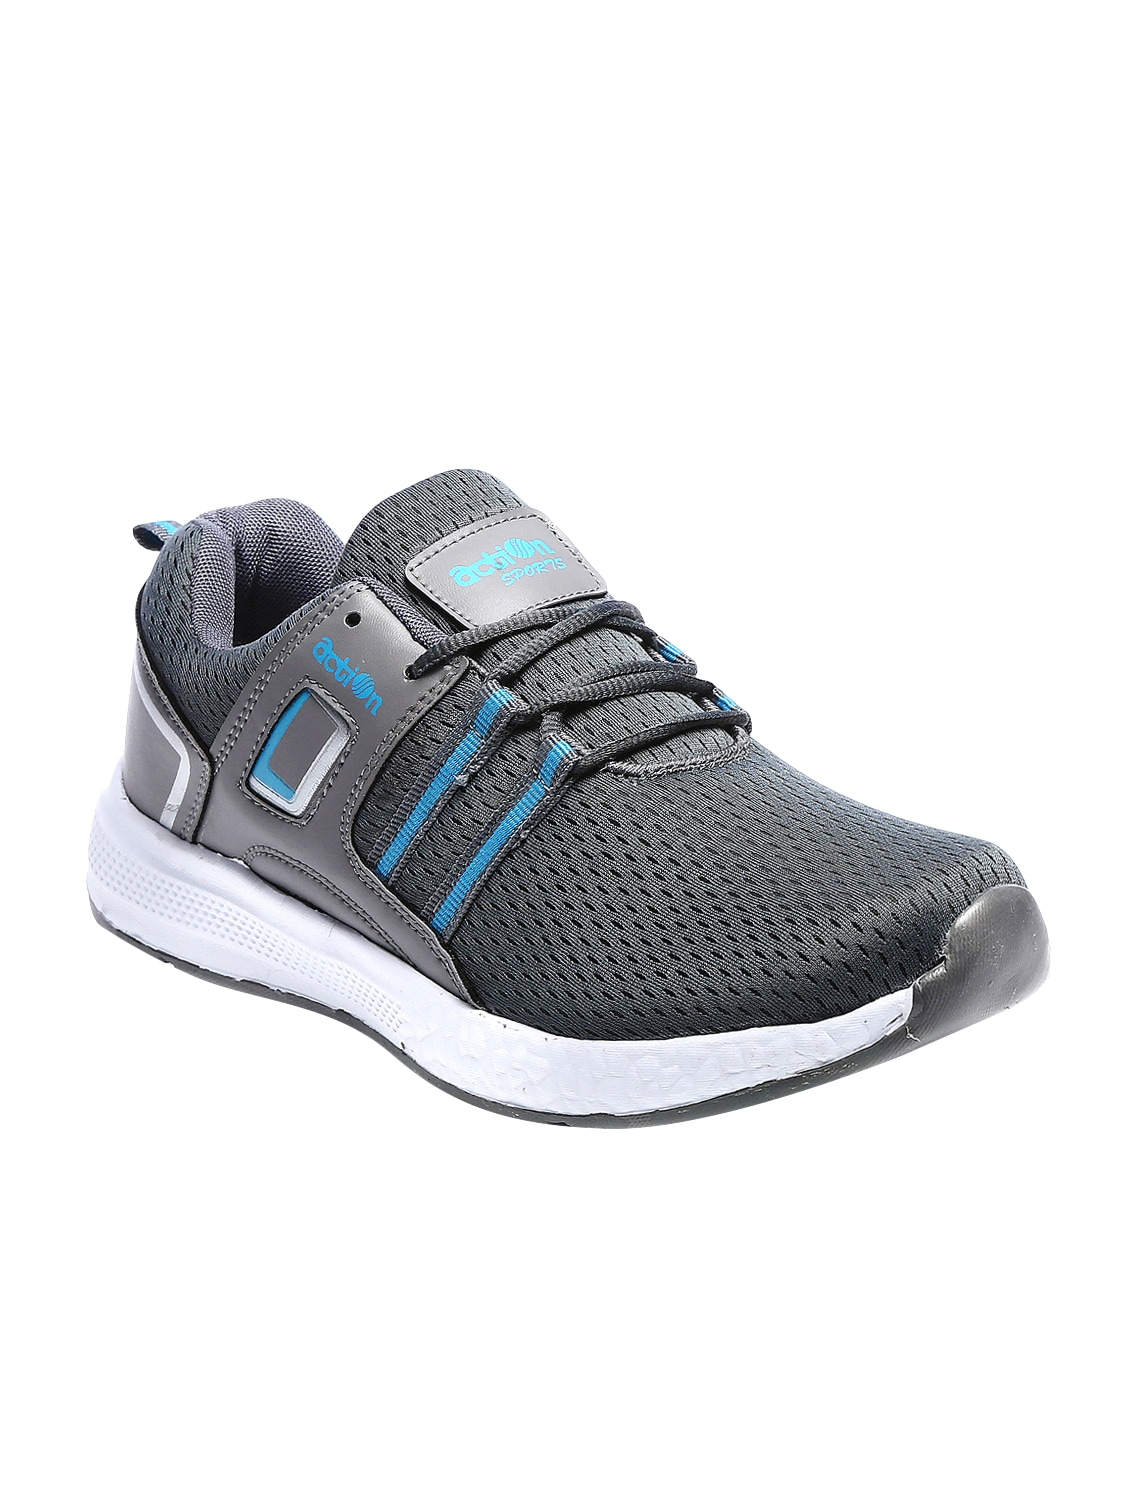 action running shoes 599